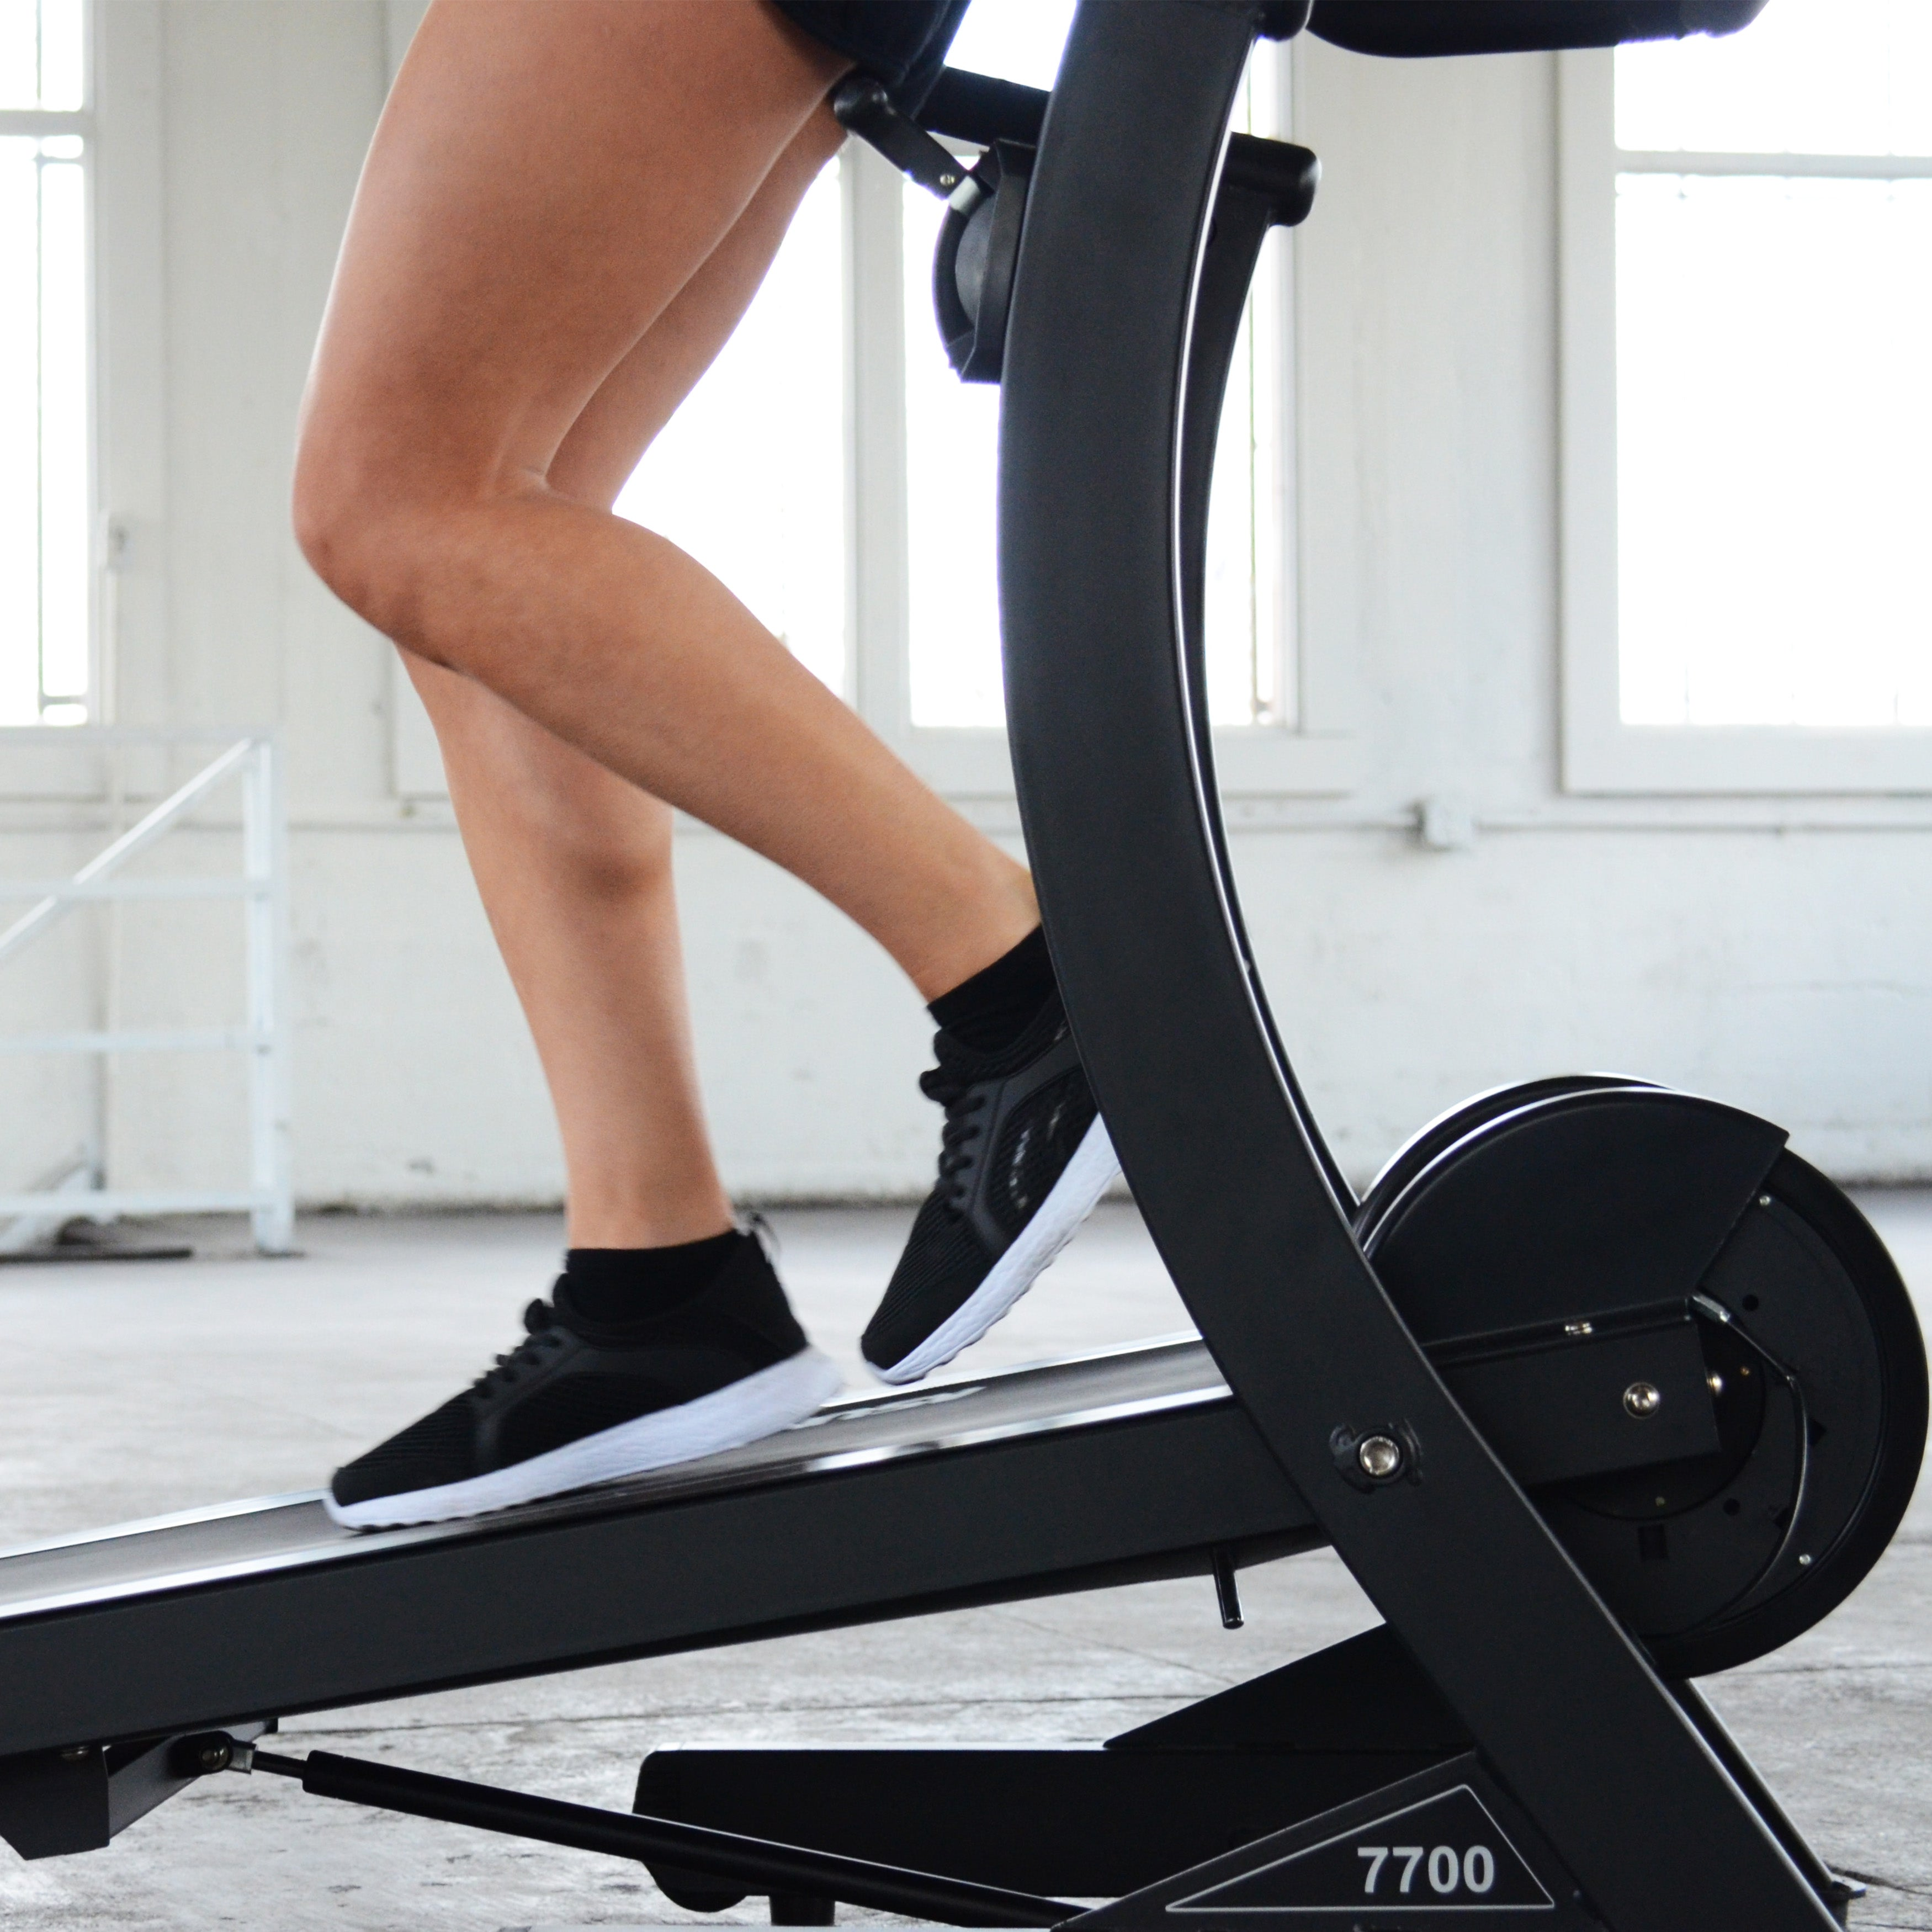 legs walking backwards on treadmill